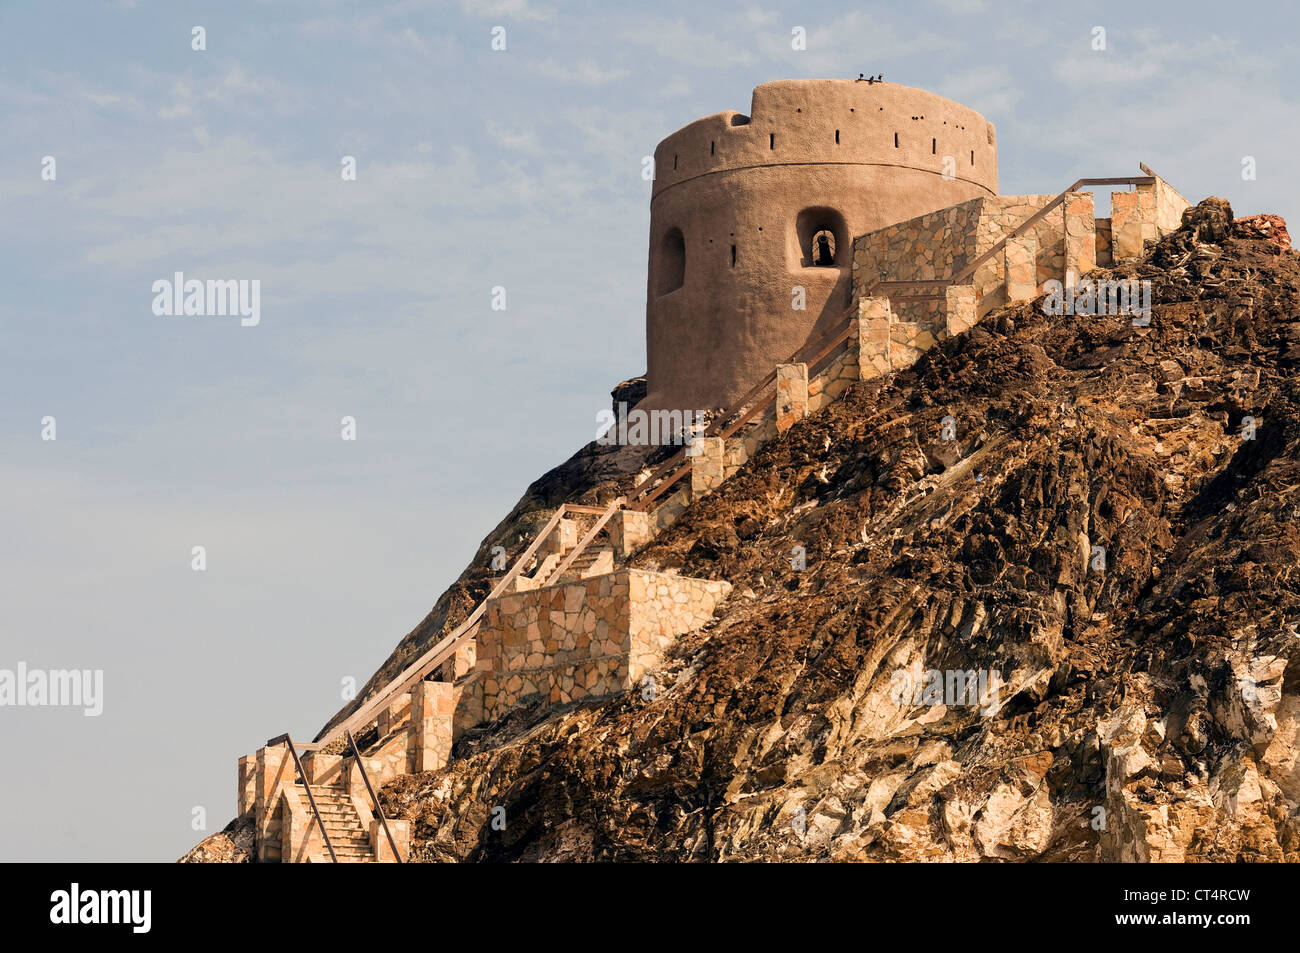 Elk207-1154 Oman, Muscat, Muttrah, Corniche, Portuguese Watchtower - Stock Image